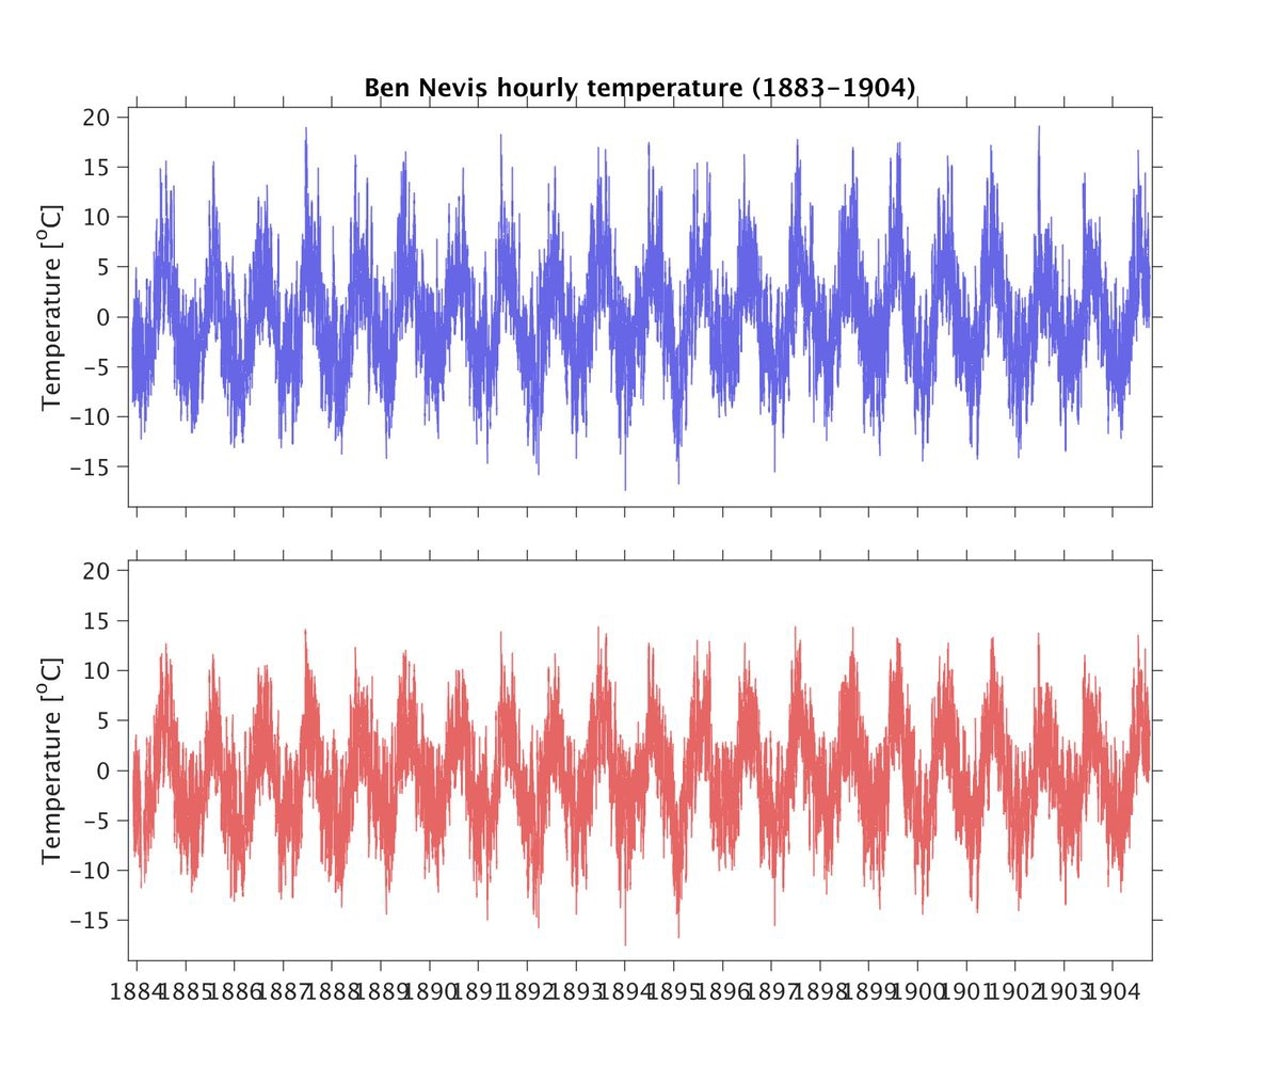 A chart showing the temperature measurements taken every hour on the summit of Ben Nevis between 1883 and 1904.